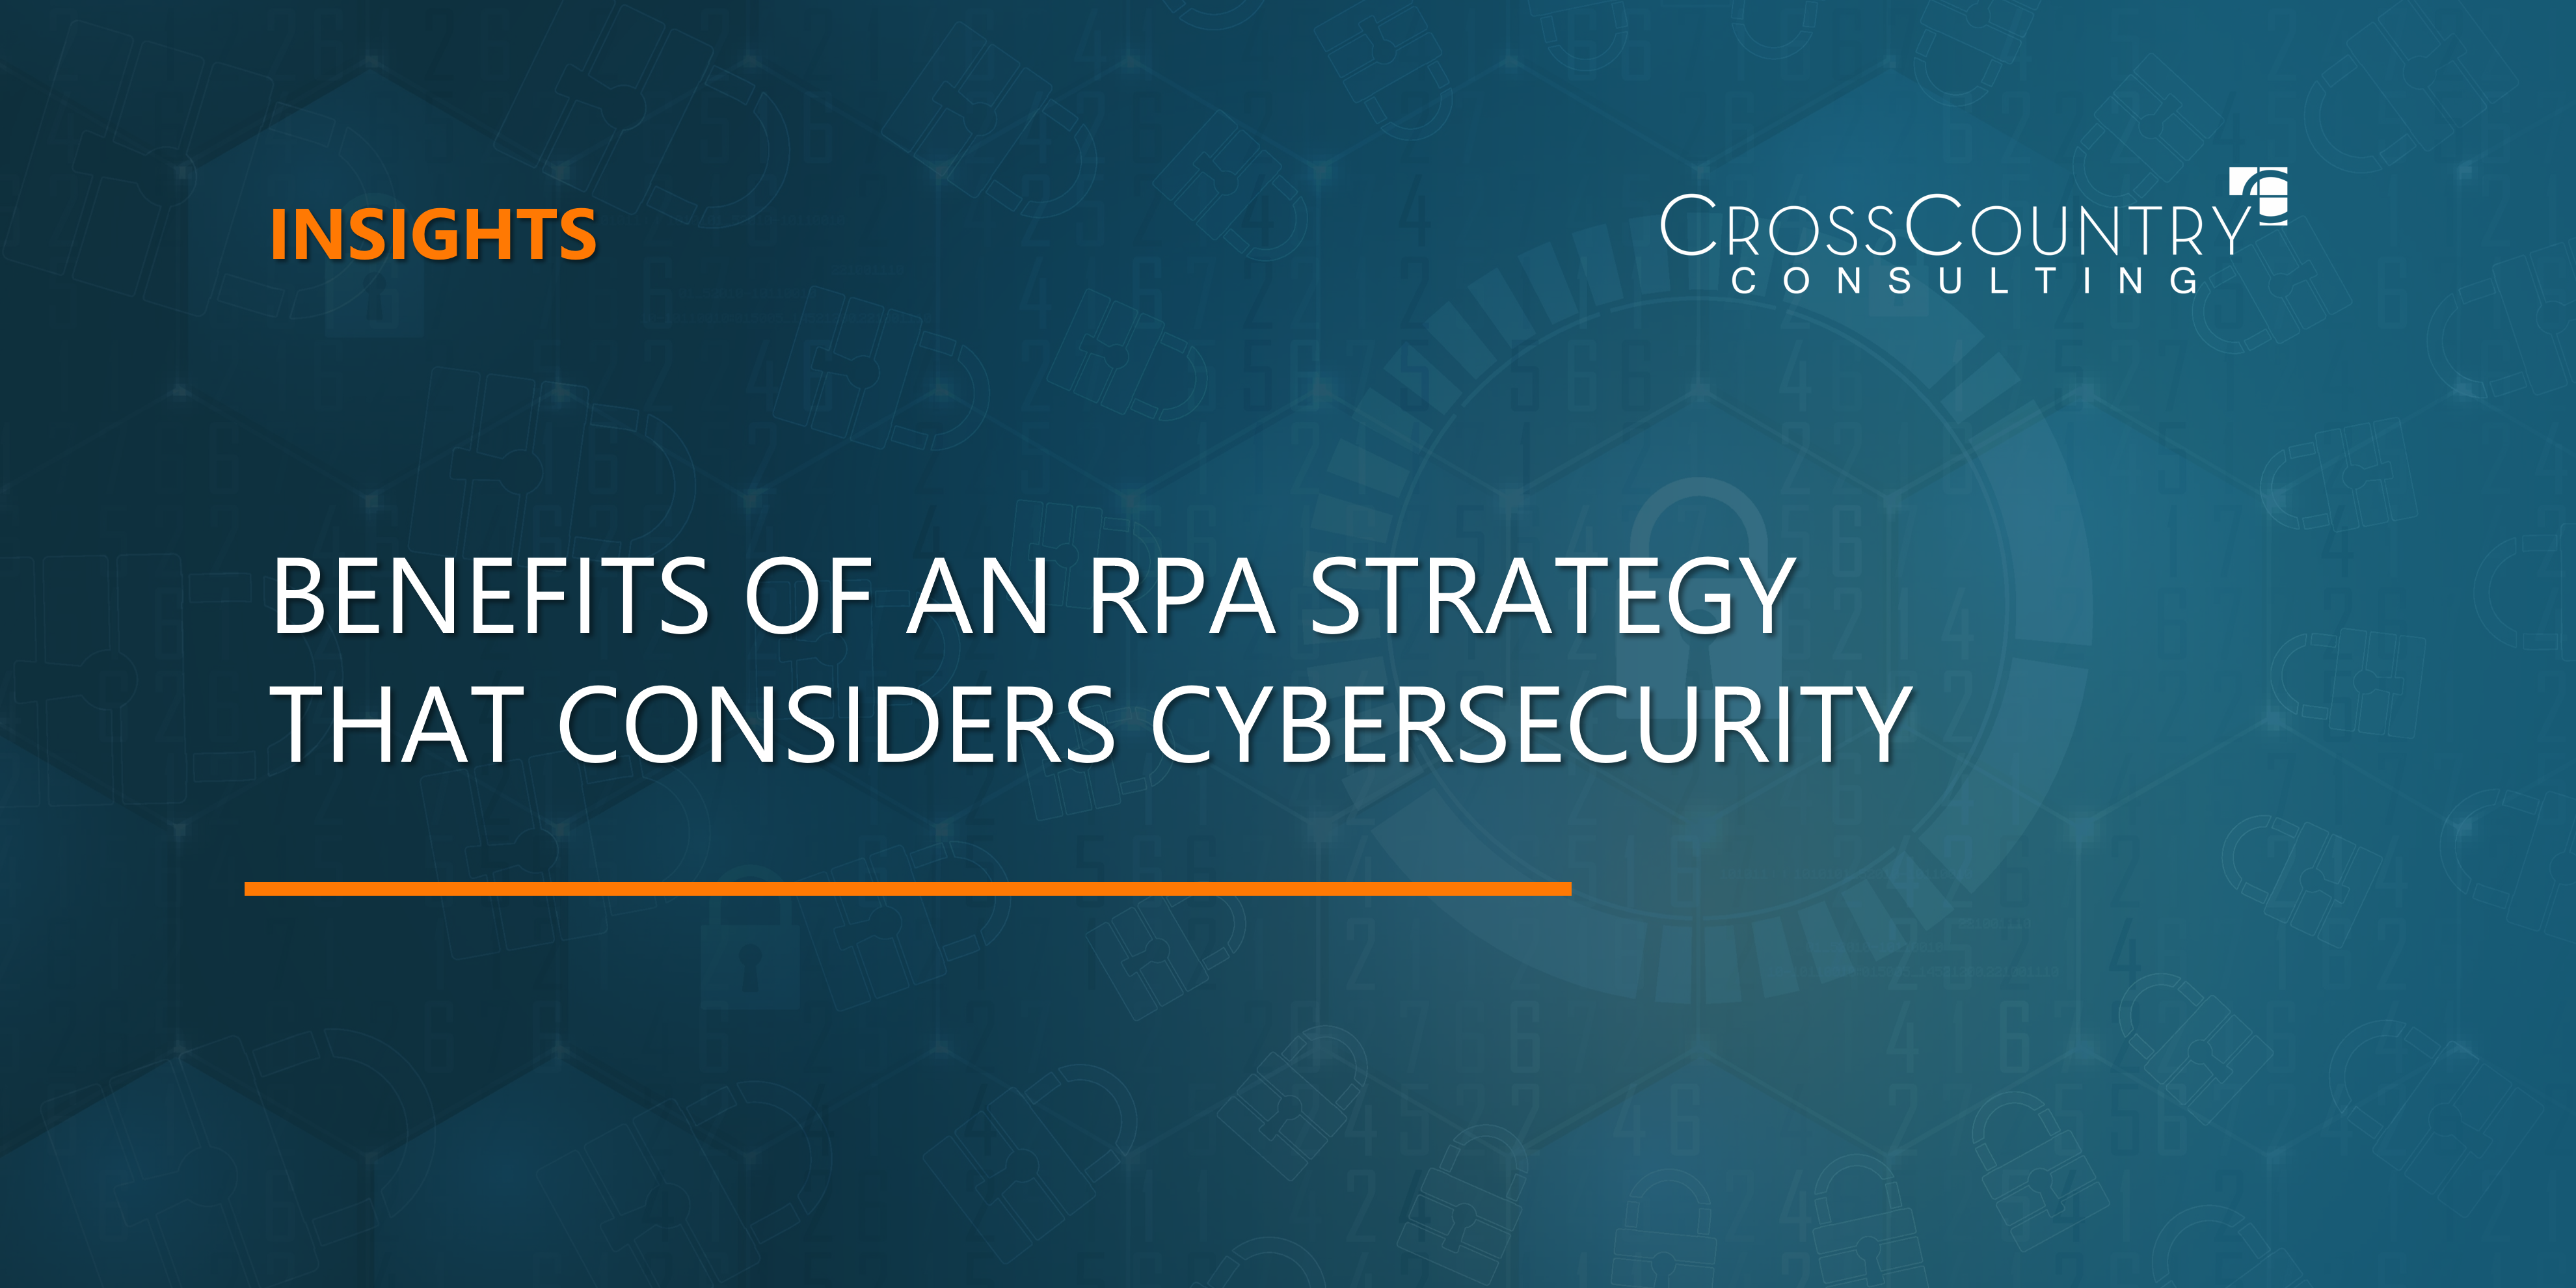 Benefits of an RPA Strategy that Considers Cybersecurity